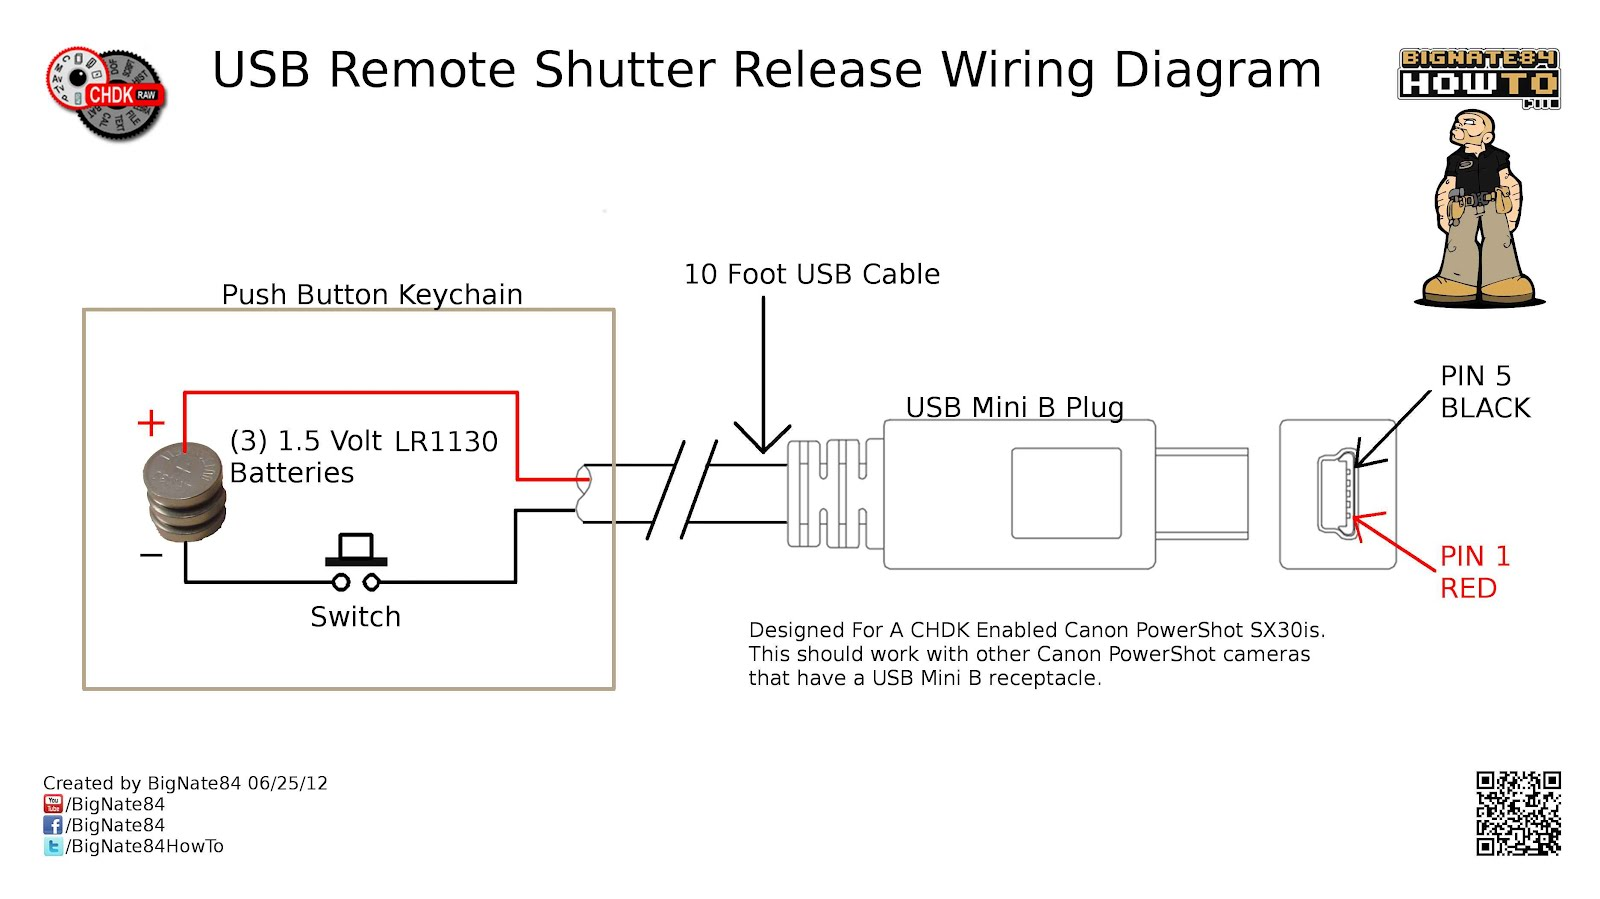 latest?cb=20120809225626 image 0001 usb remote shutter wiring diagram 1 jpeg chdk wiki micro usb plug wiring diagram at cos-gaming.co